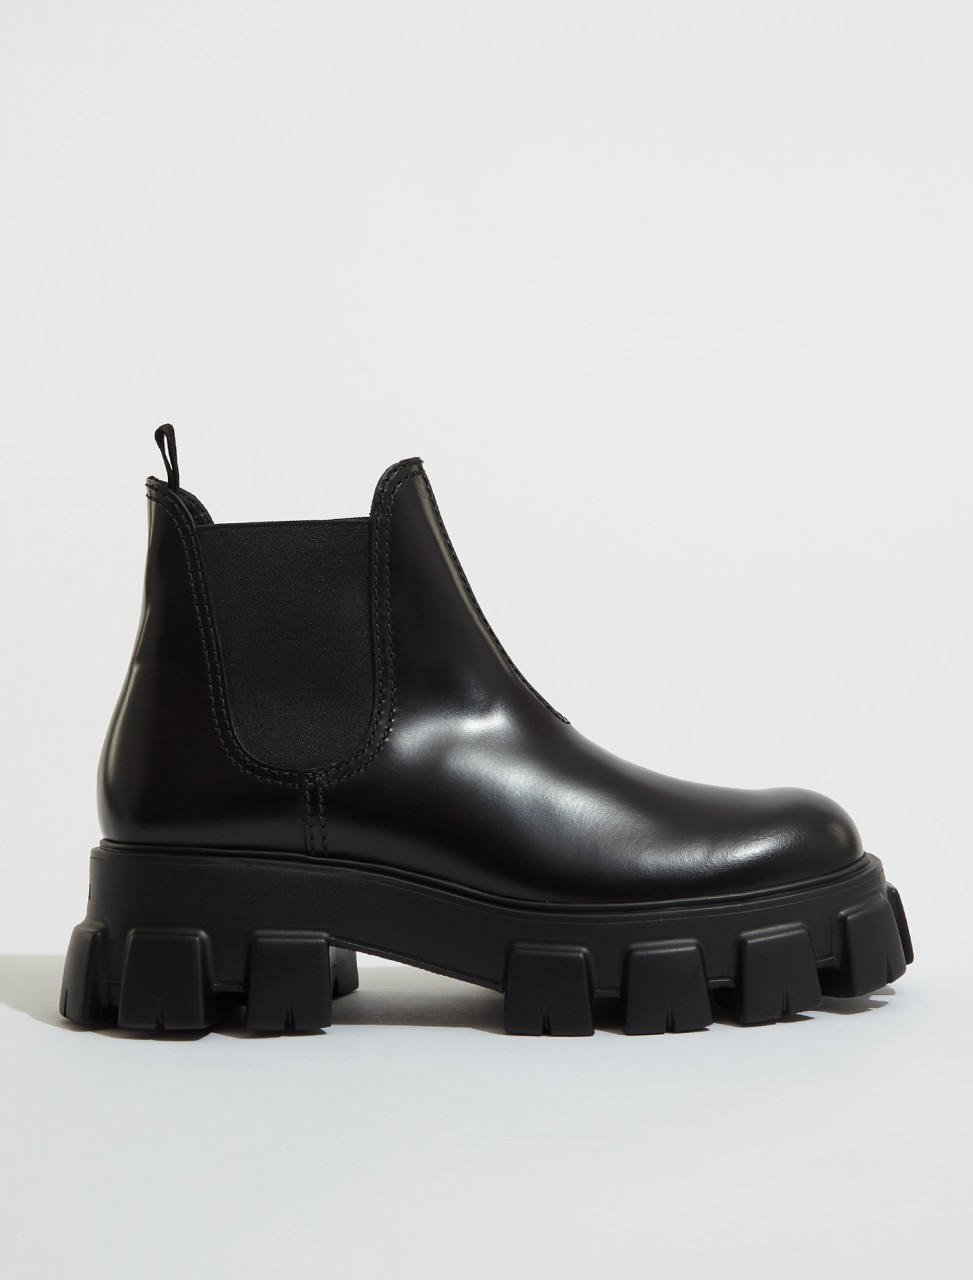 2TE174_B4L_F0002 PRADA MONOLITH BRUSHED LEATHER CHELSEA BOOTS IN BLACK